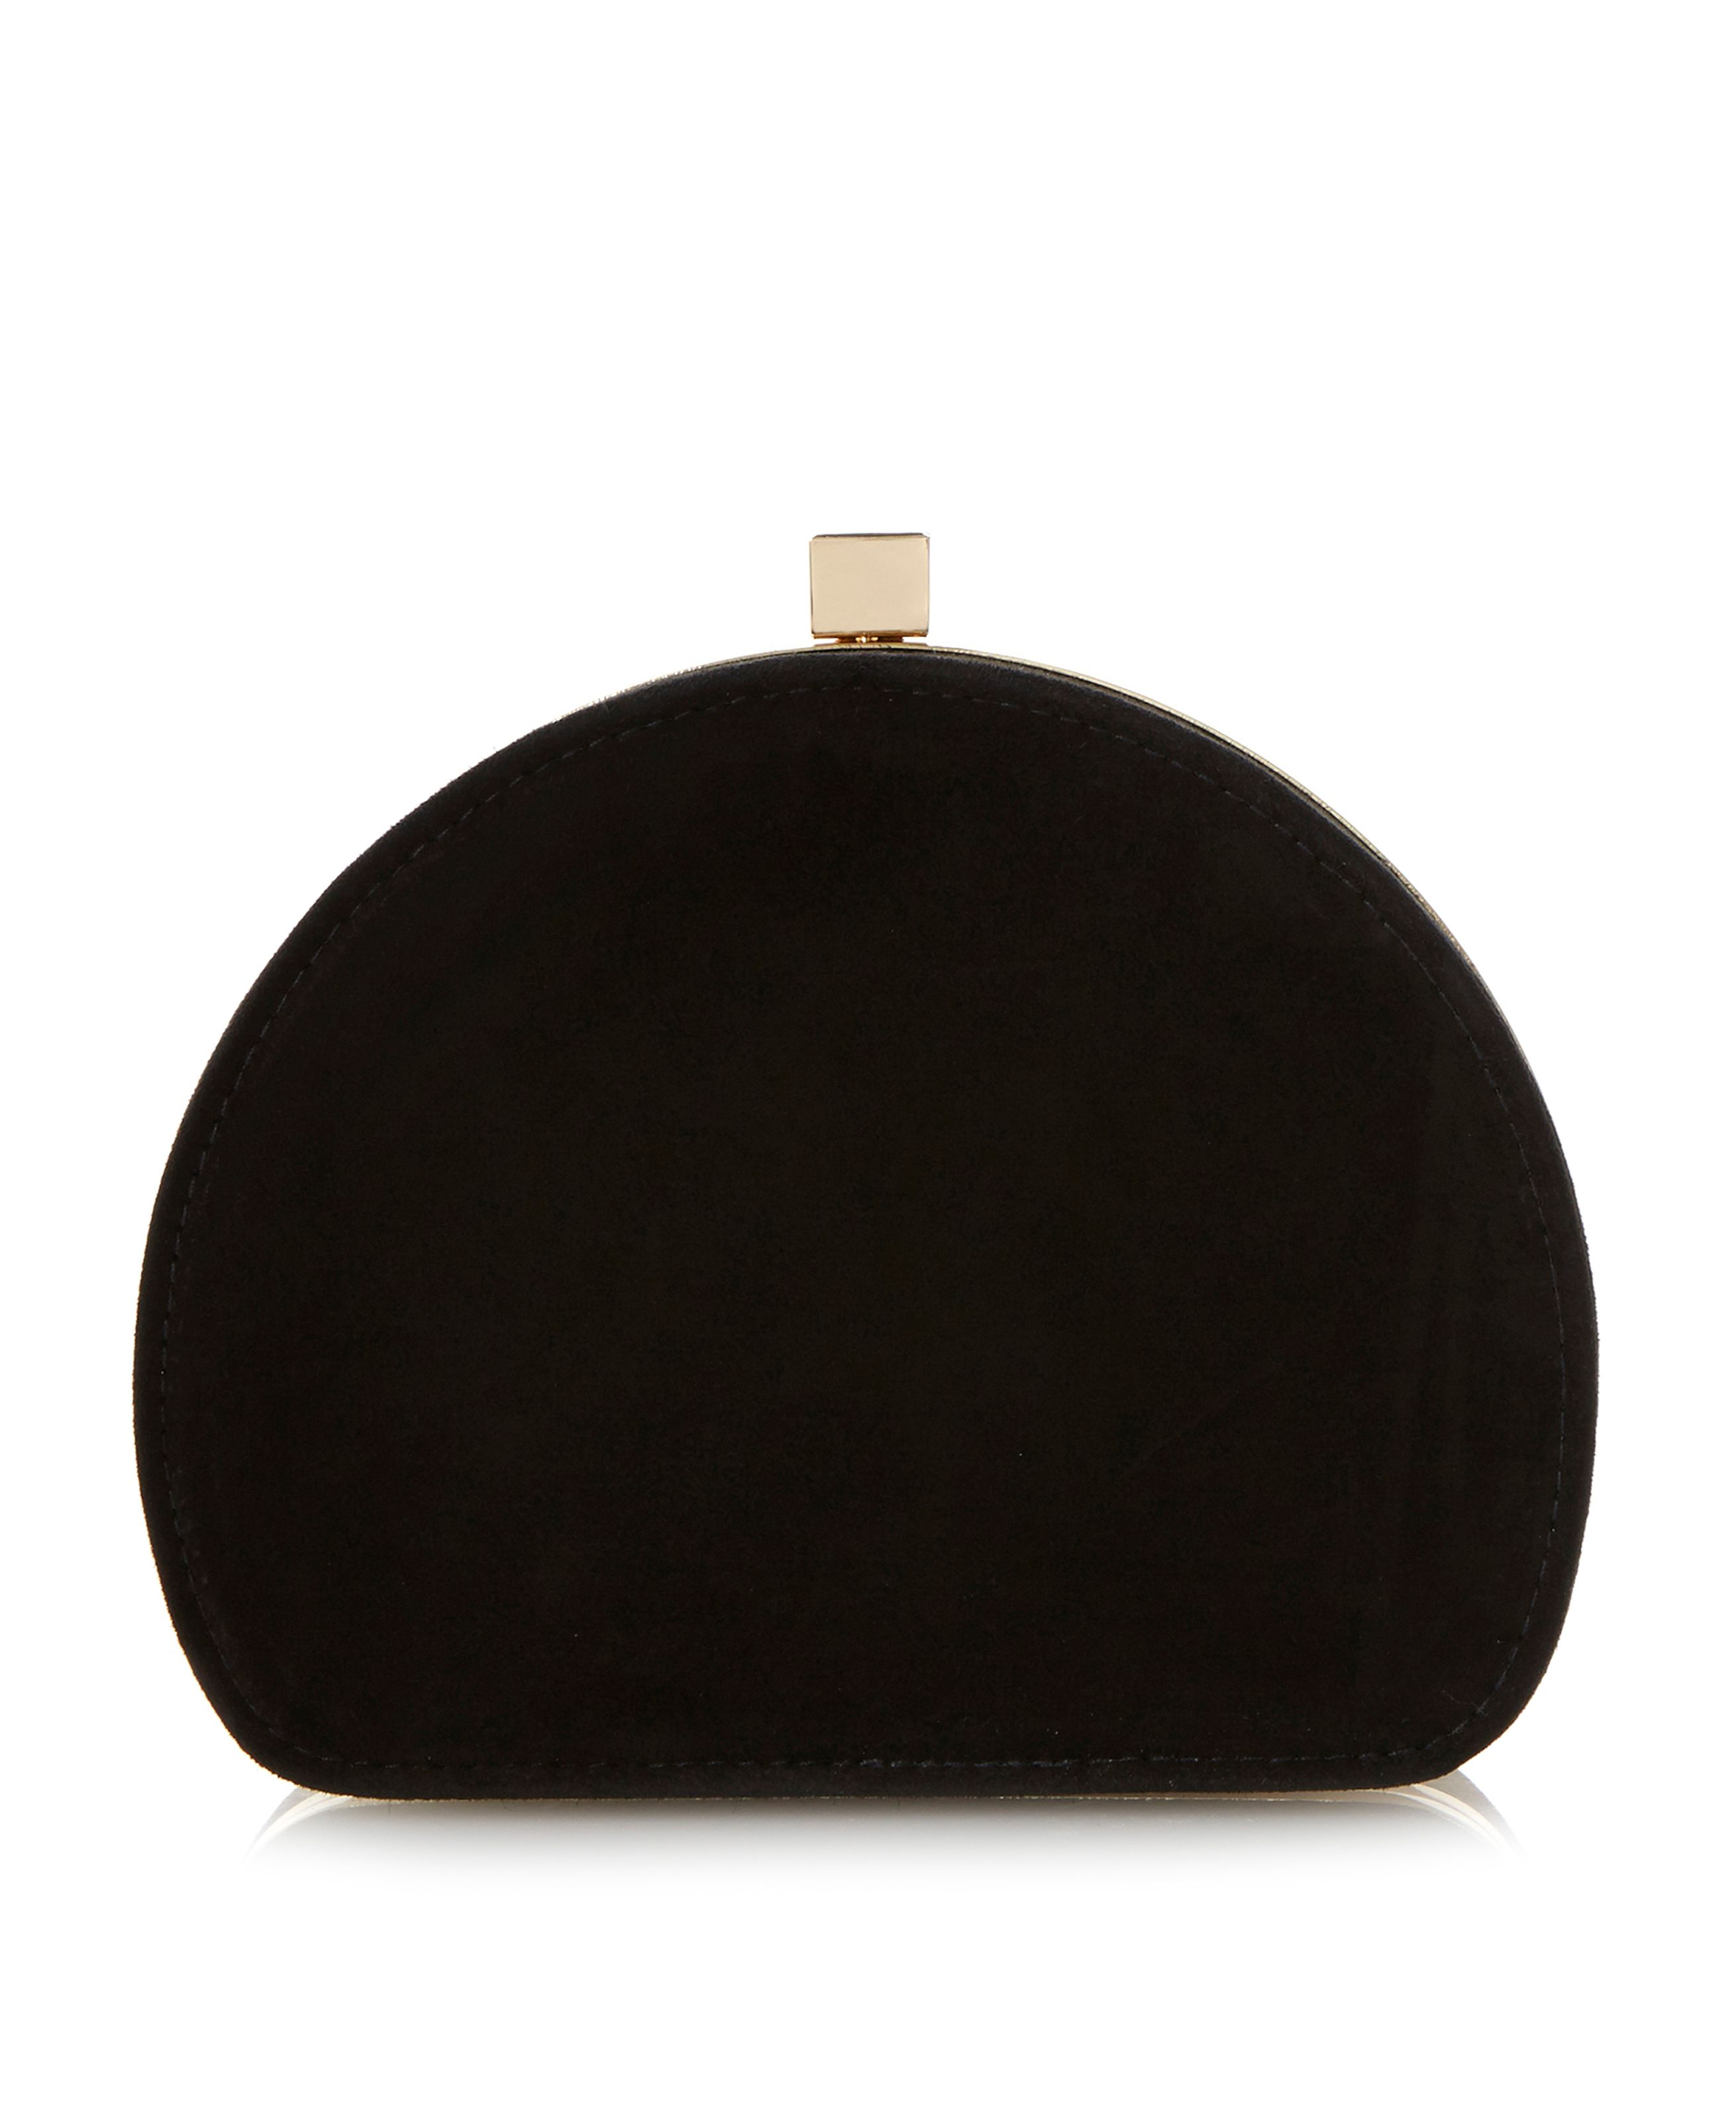 Eva suede oval clutch bag